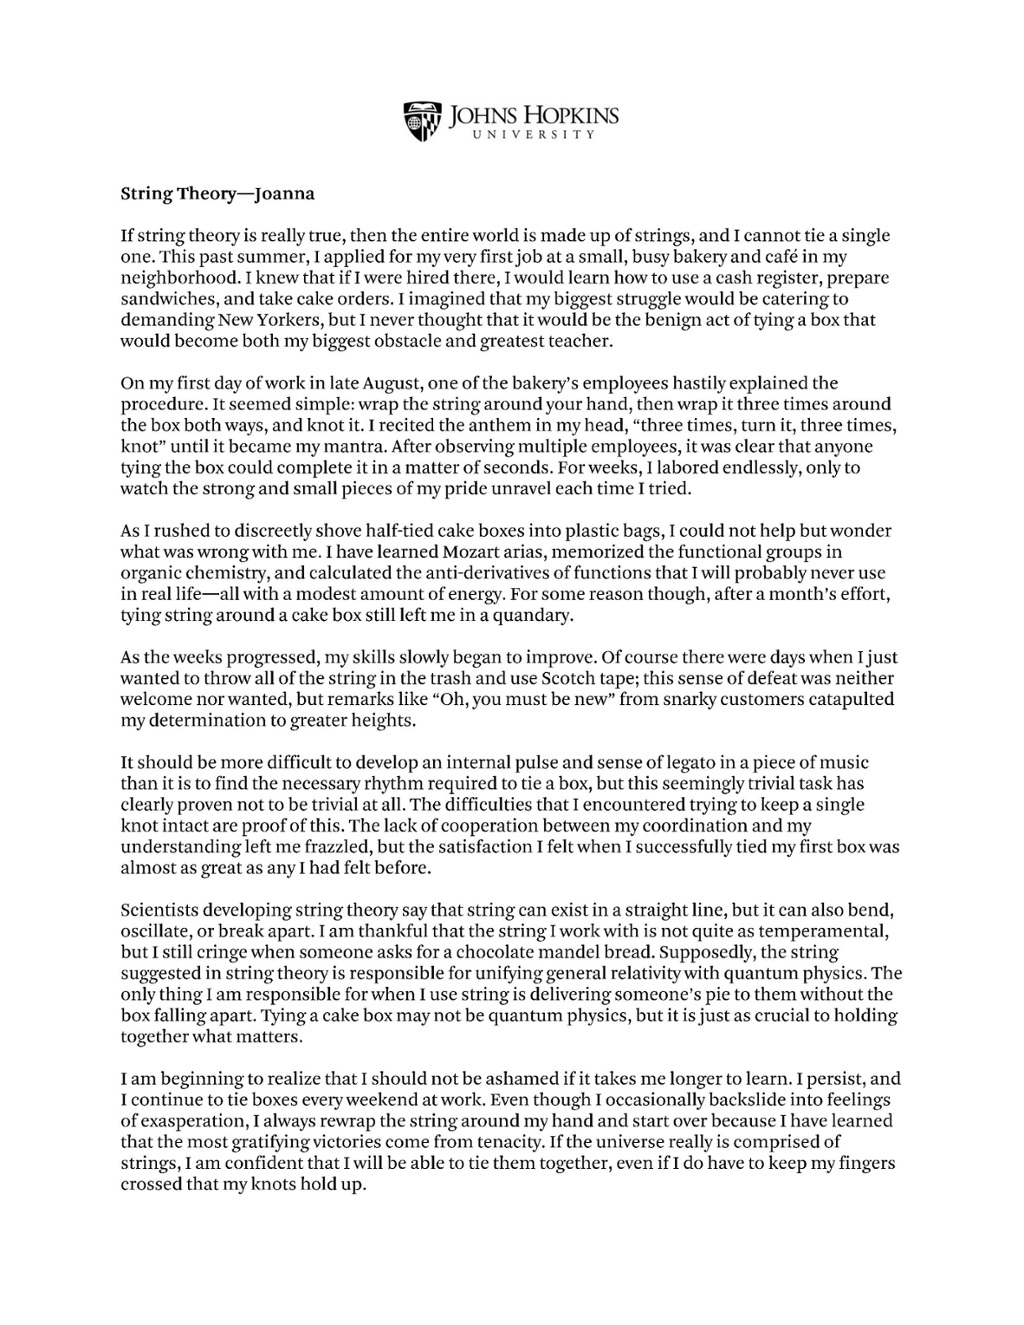 really good college essays exolgbabogadosco - Good College Essays Examples